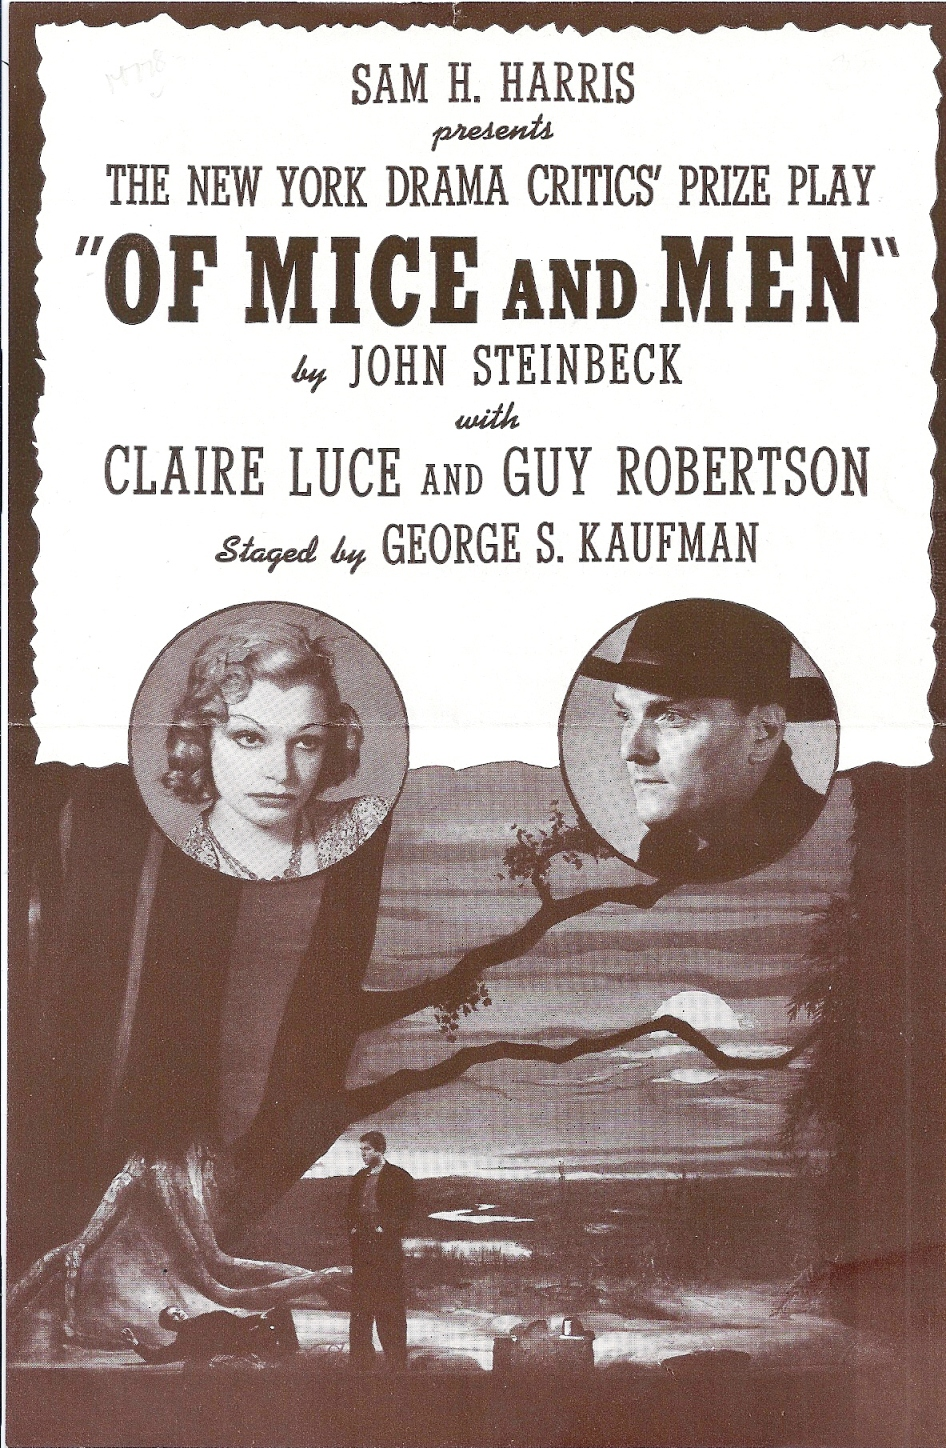 Of Mice and Men playbill 1940s